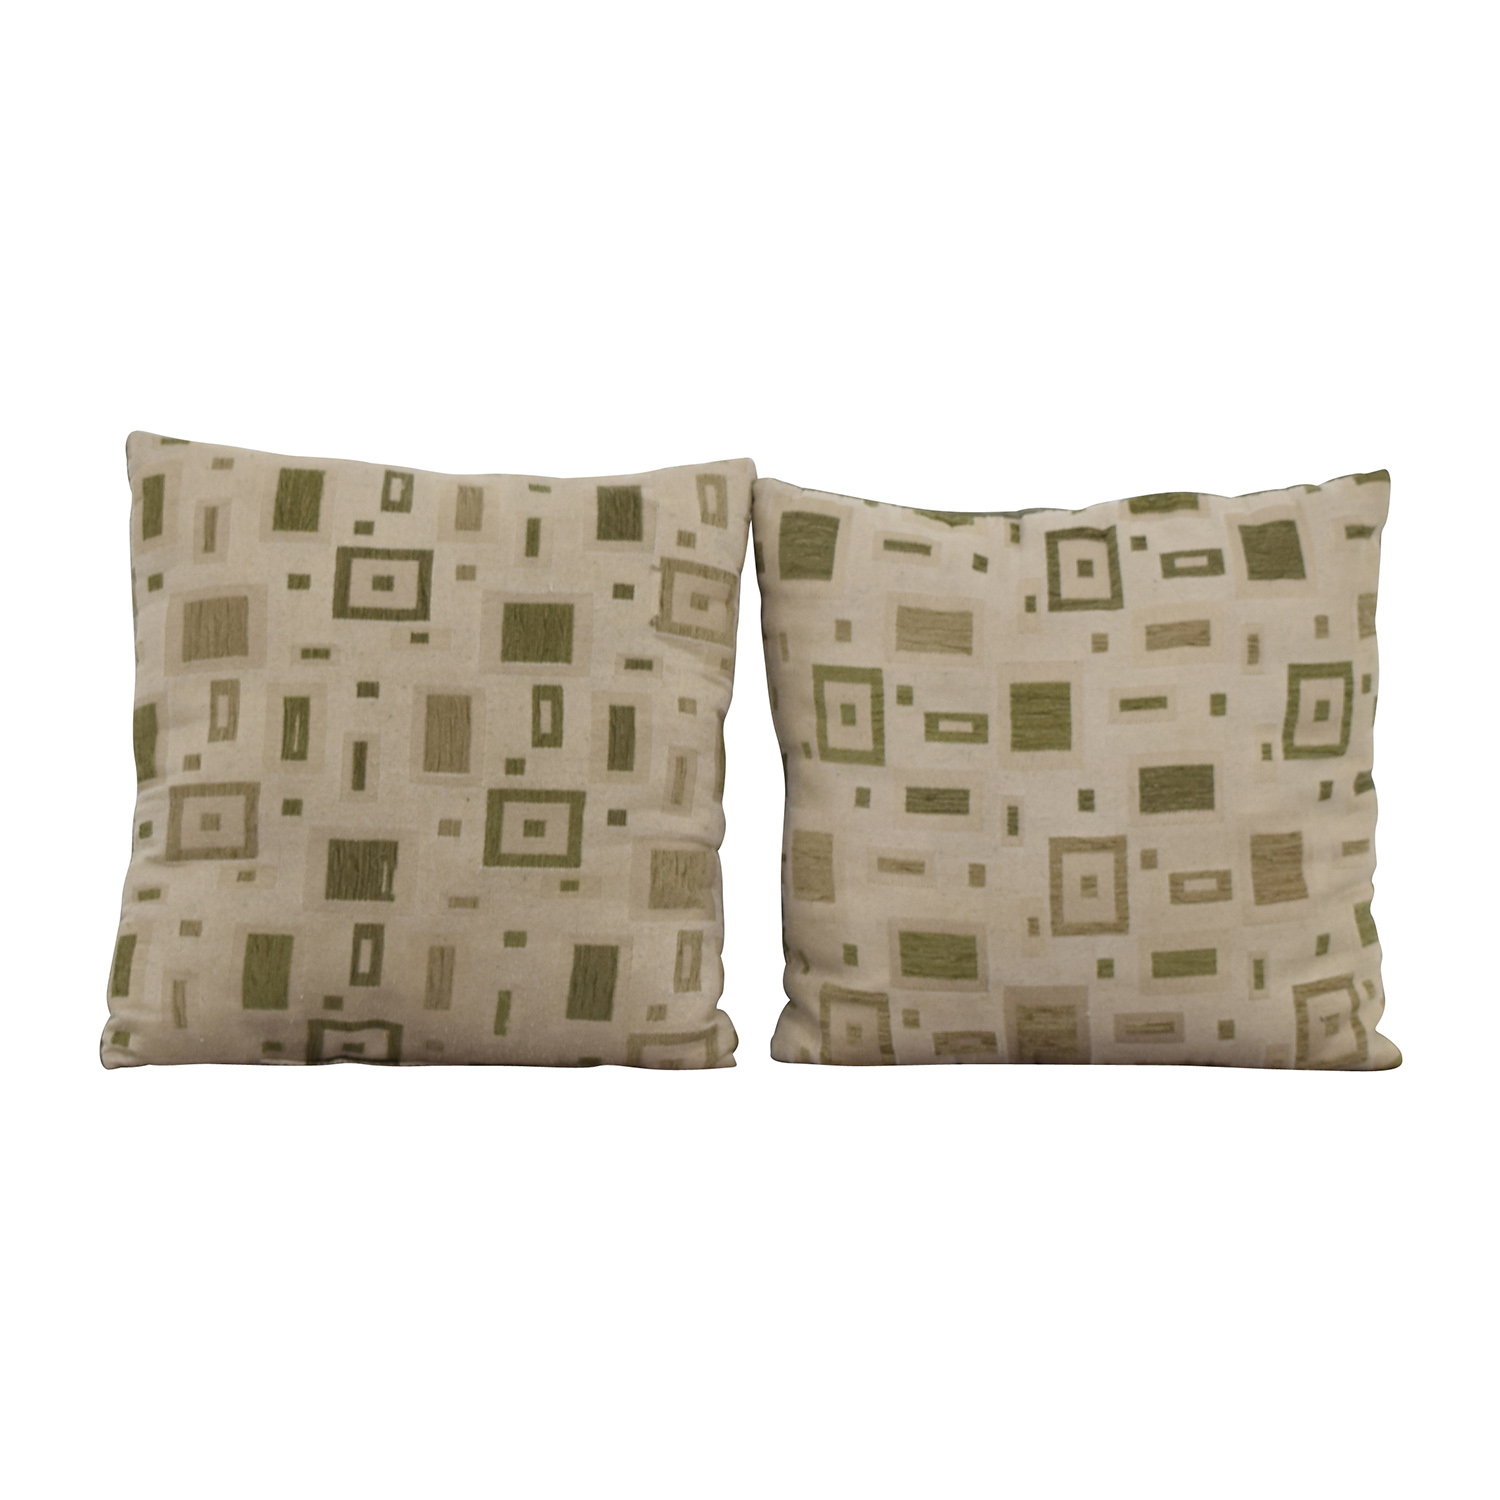 Multi-colored Square Design Tan and Green Toss Pillows nyc